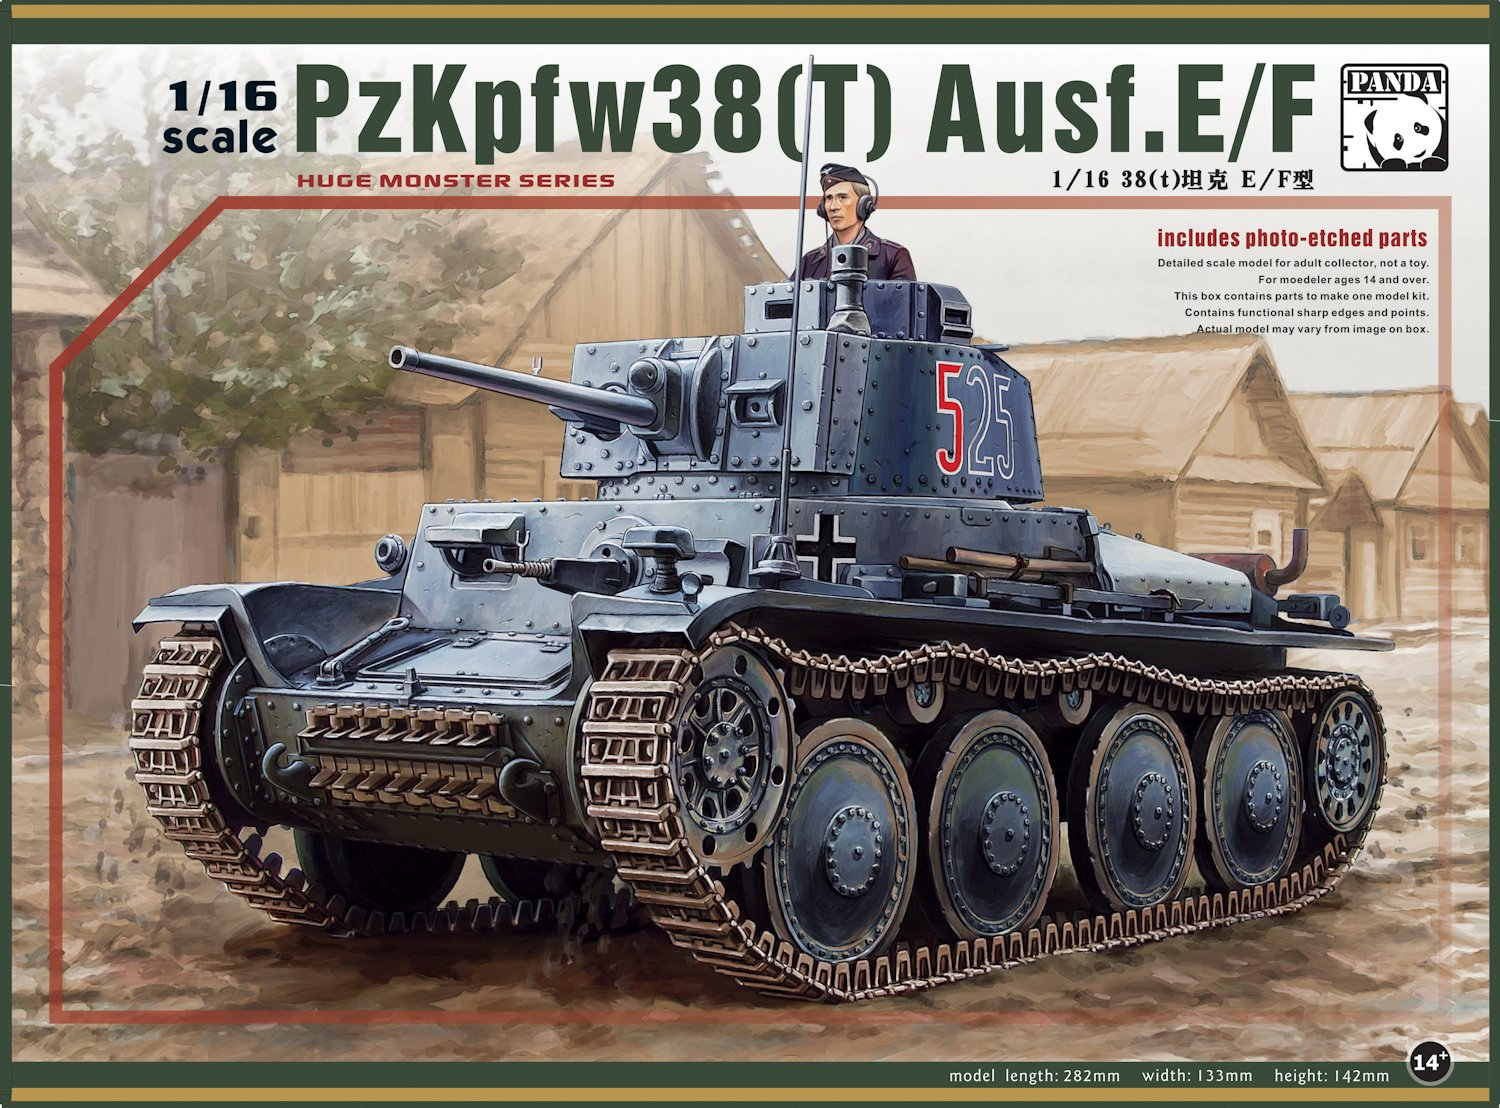 The Modelling News 116th Panzer 38t from PandaHobby